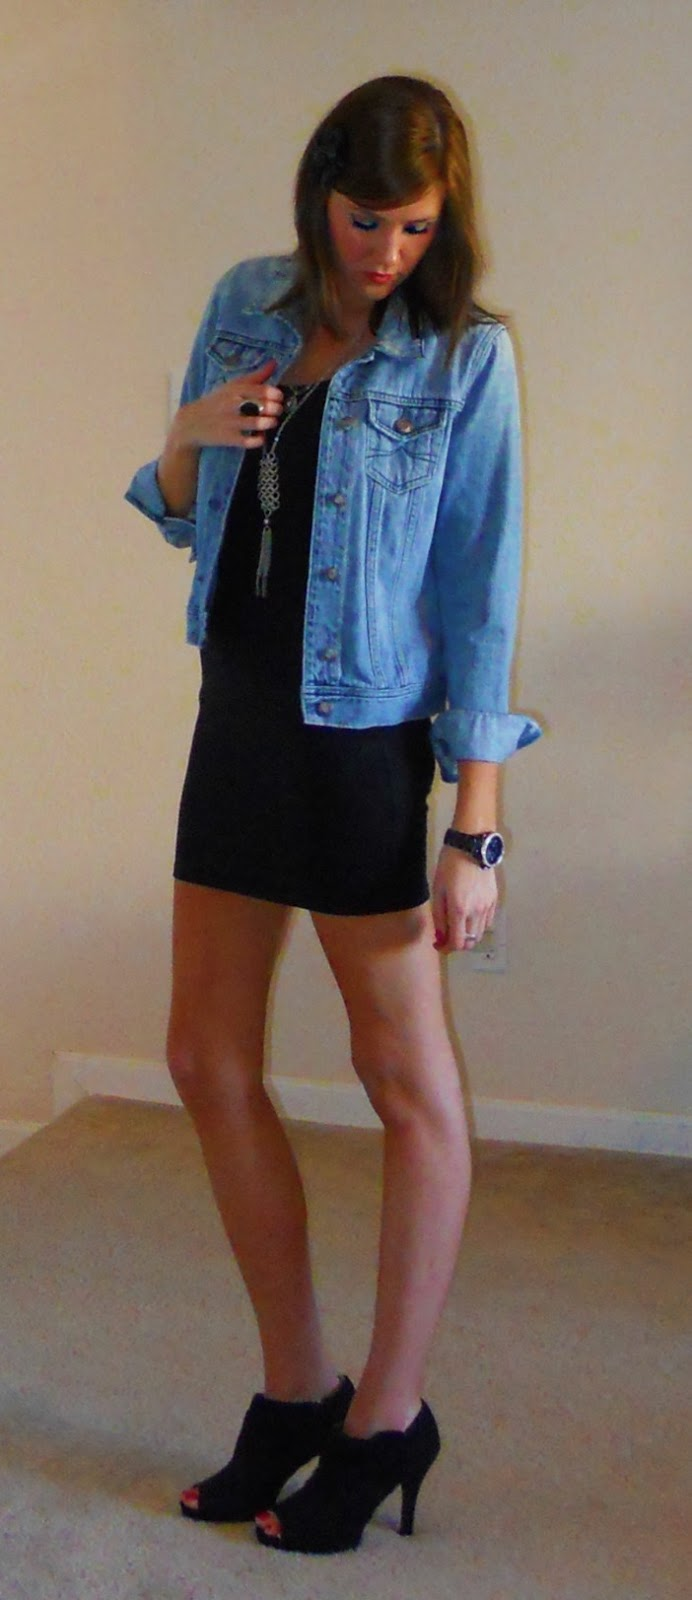 Black dress jean jacket - Black Dress Jean Jacket 3t